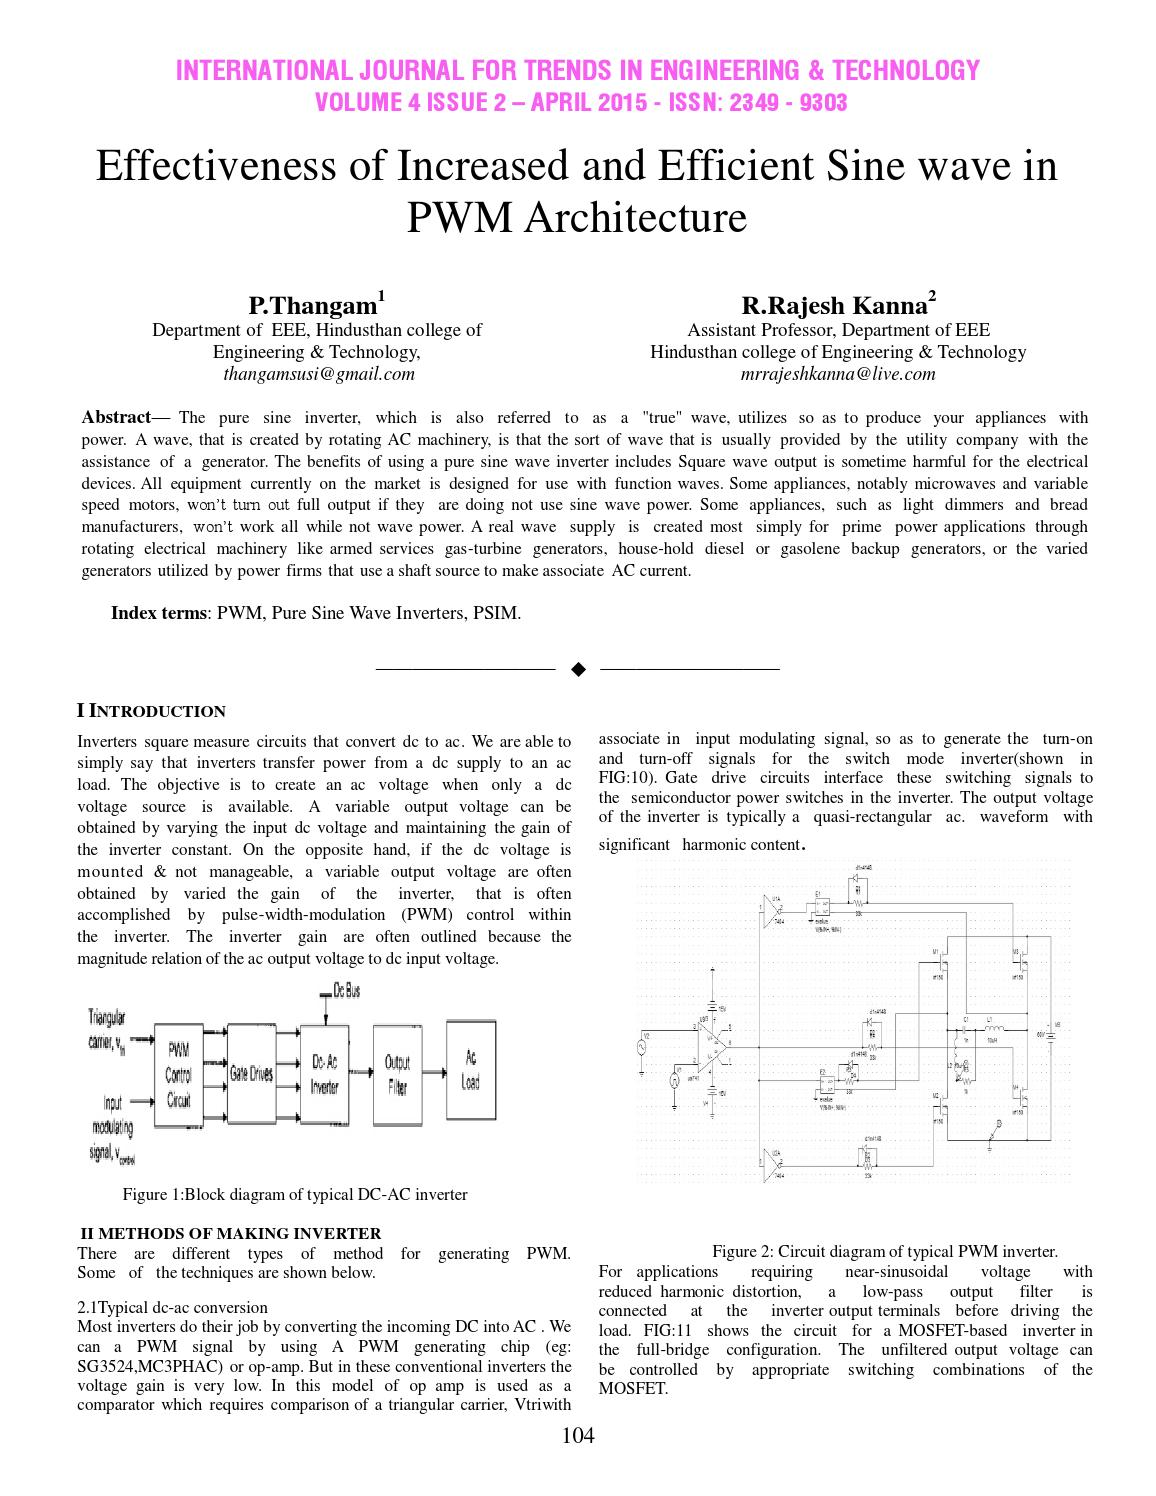 hight resolution of effectiveness of increased and efficient sine wave in pwm architecture by international journal for trends in engineering and technology issuu